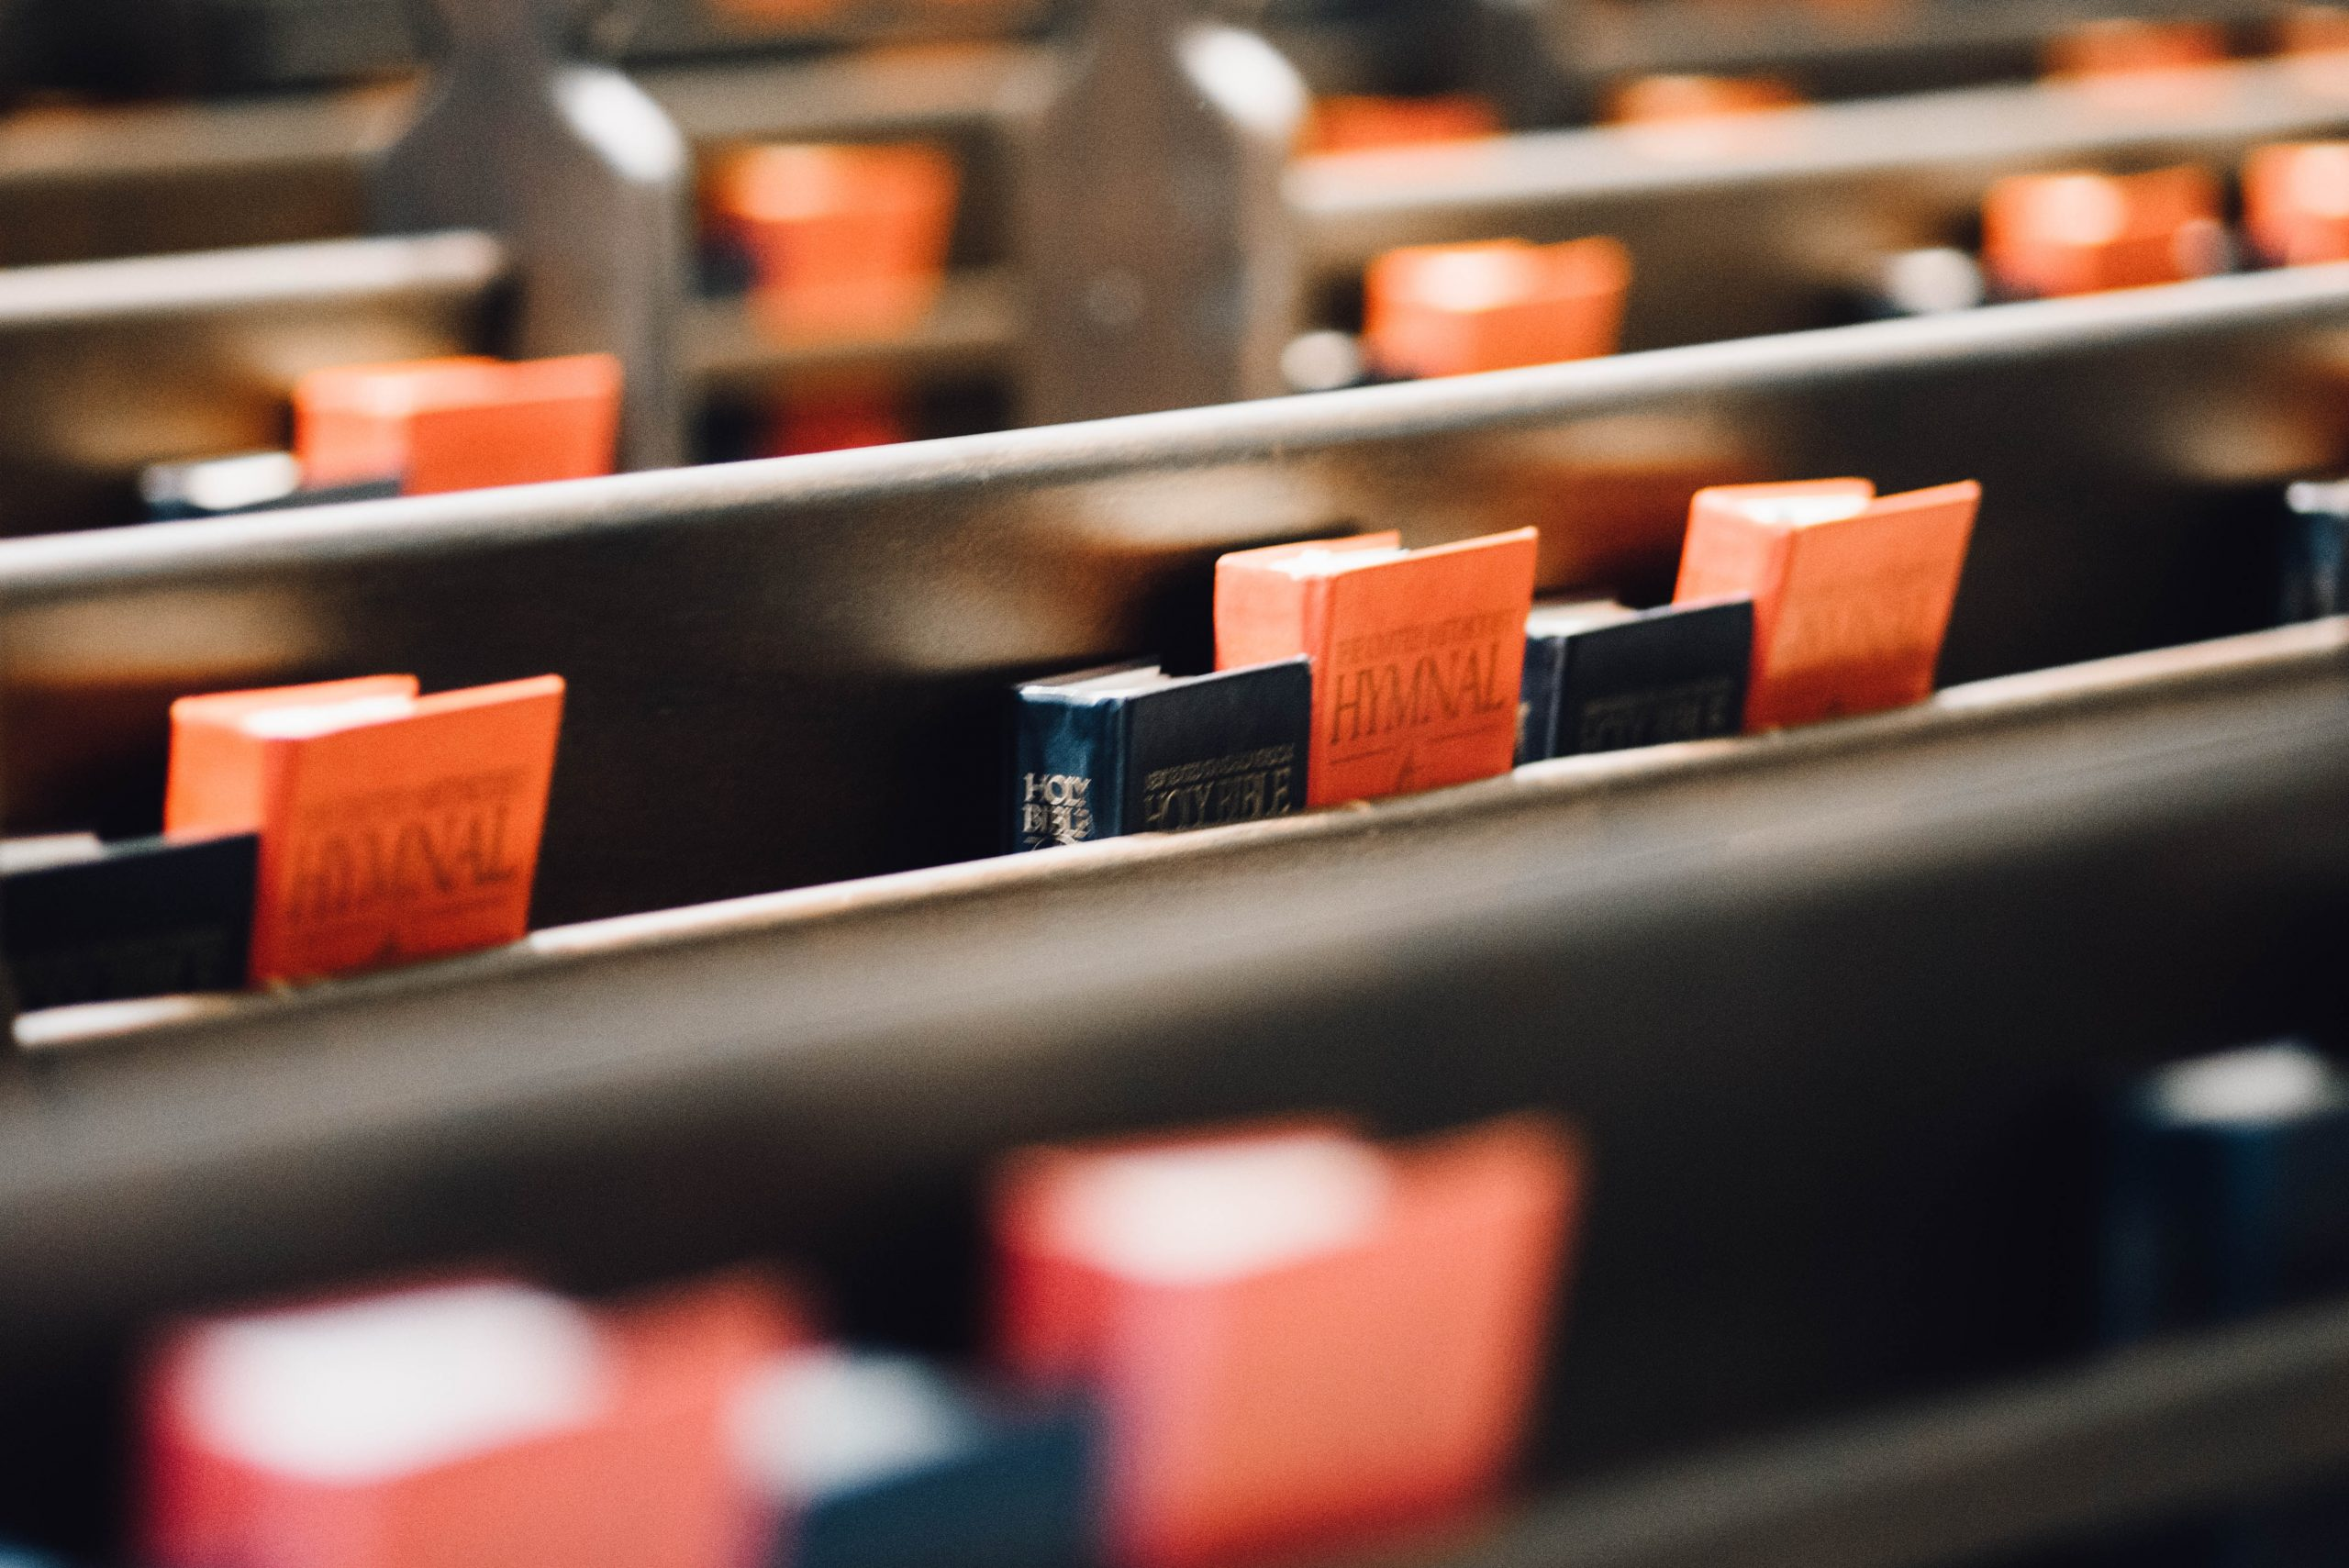 Close up image of pews in a church with Bibles and Hymns on then